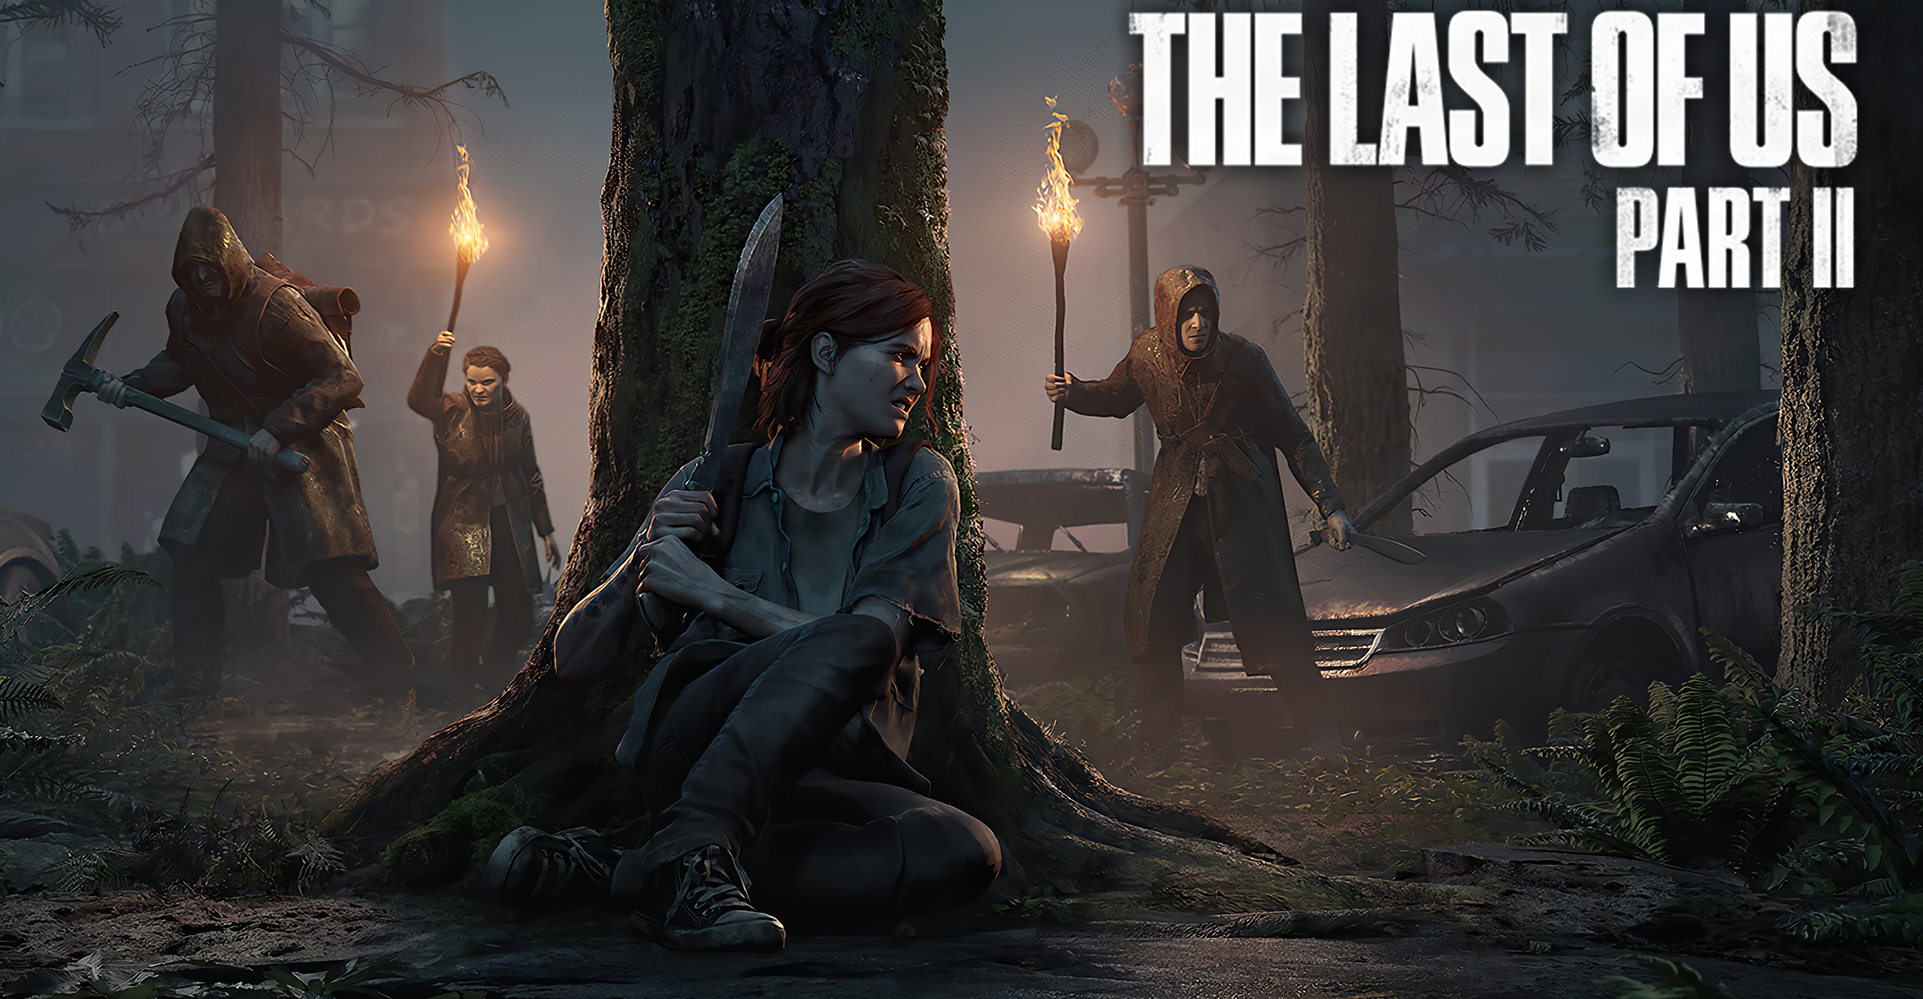 'The Last of Us Part II' leaks hint to major spoilers